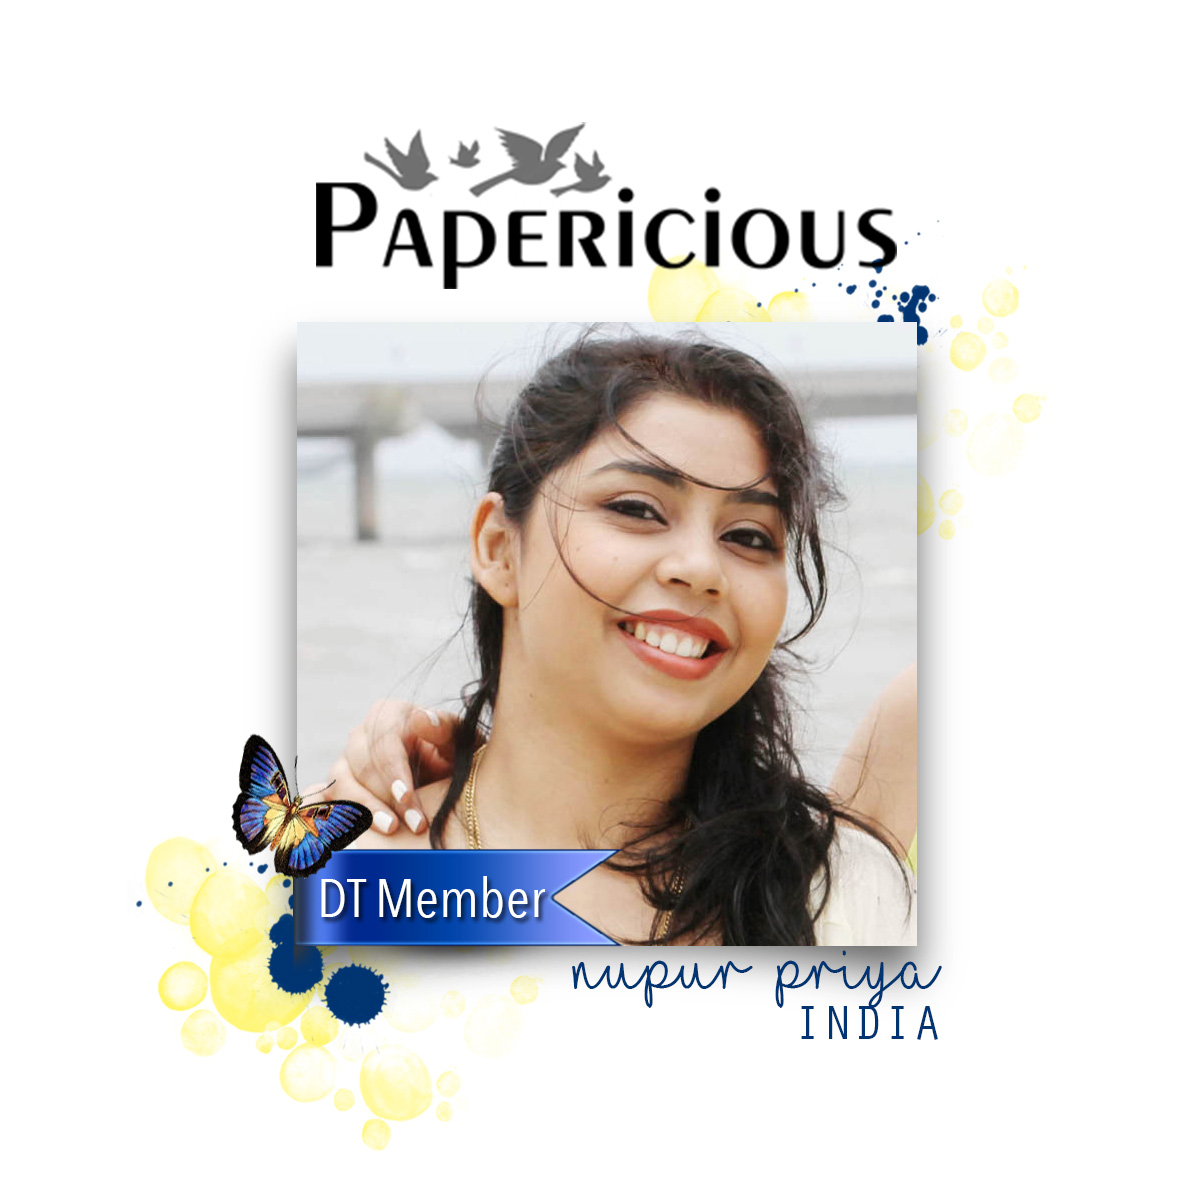 I Design for Papericious